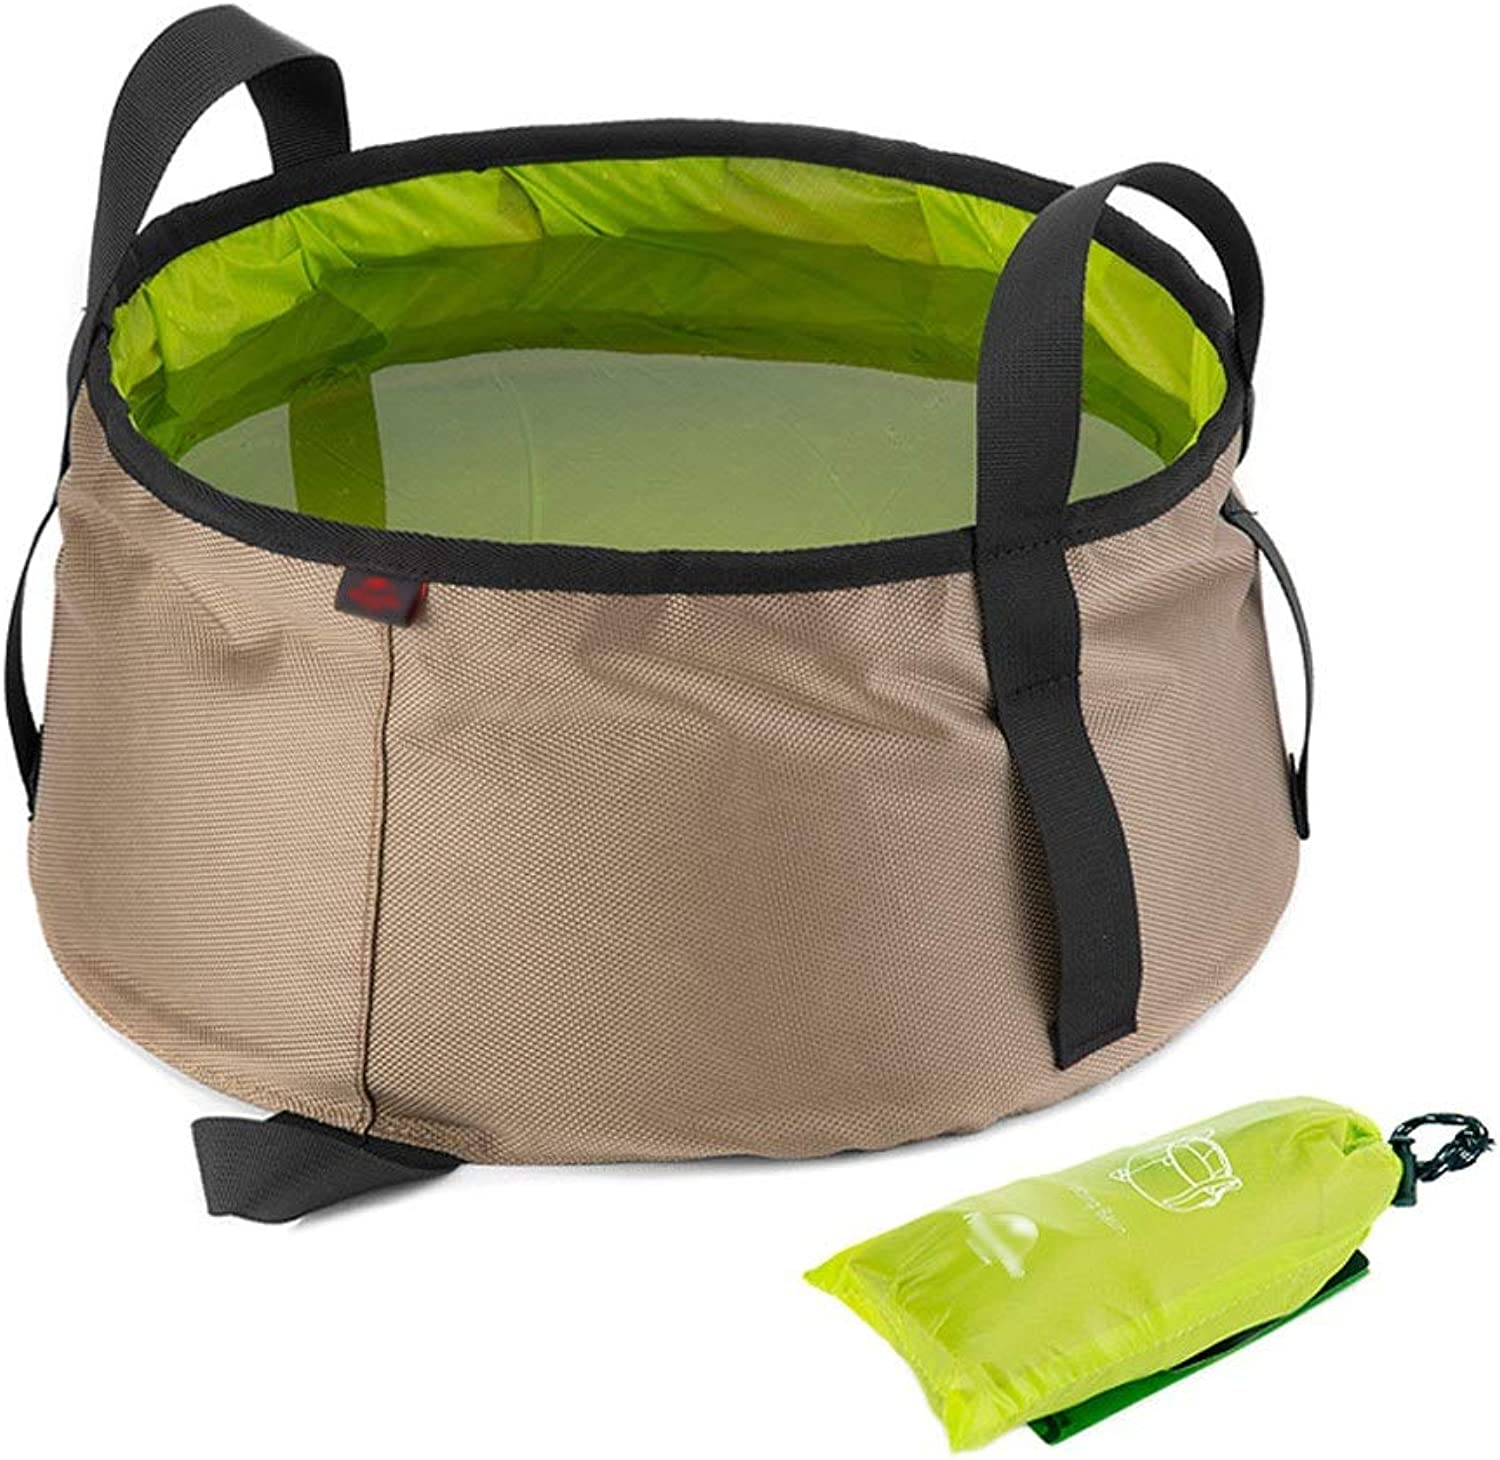 FH MultiFunction Portable Folding Bucket, Outdoor Hiking Camping Washbasin, Suitable for All Kinds of Outdoor Activities and Families